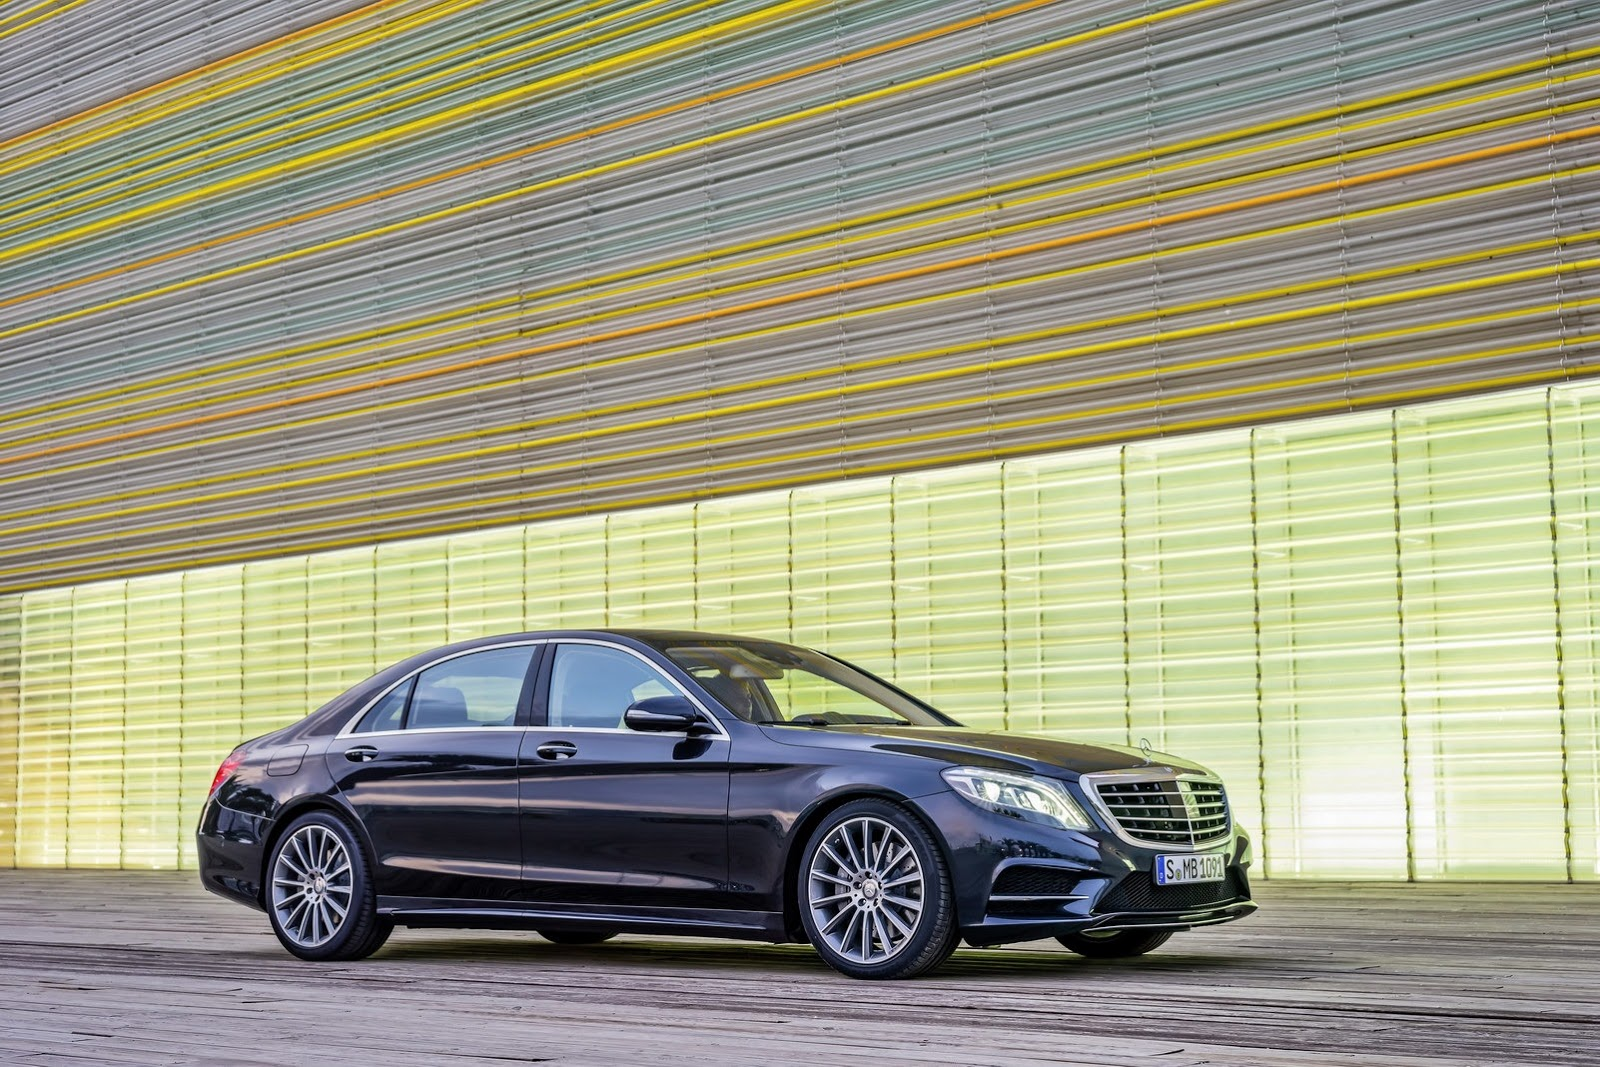 2014 Mercedes Benz S-Class - SMADE MEDIA (58)